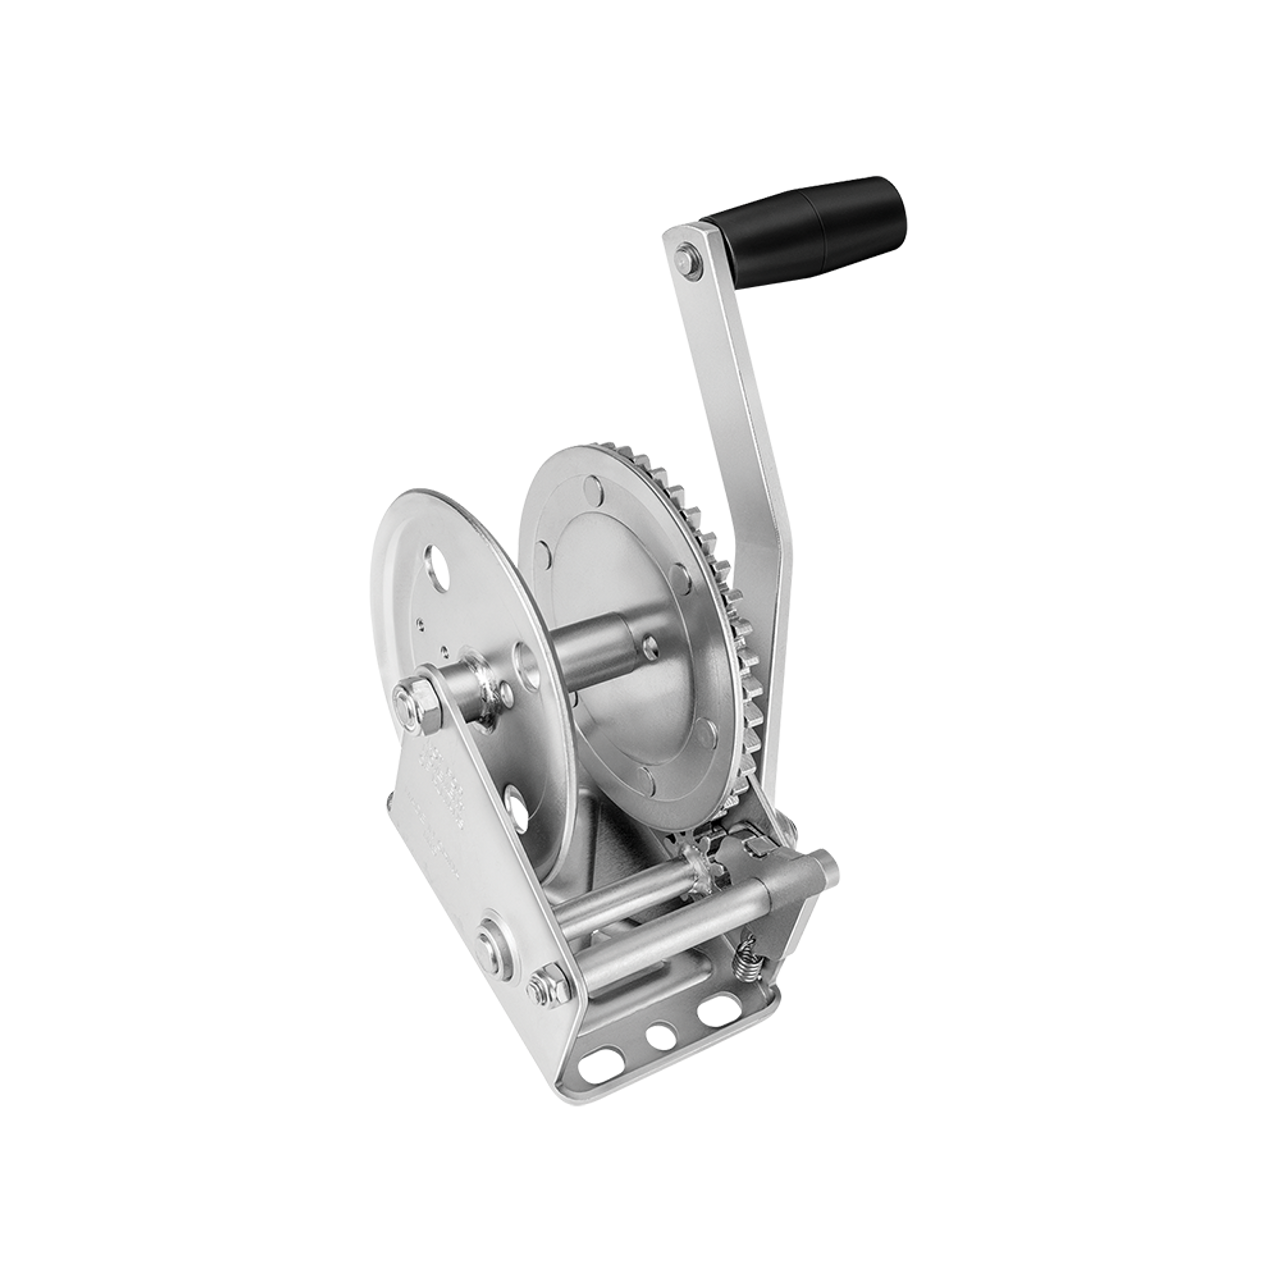 DTW --- Dutton Single Speed Winch - 1,400 lb Capacity - with cable